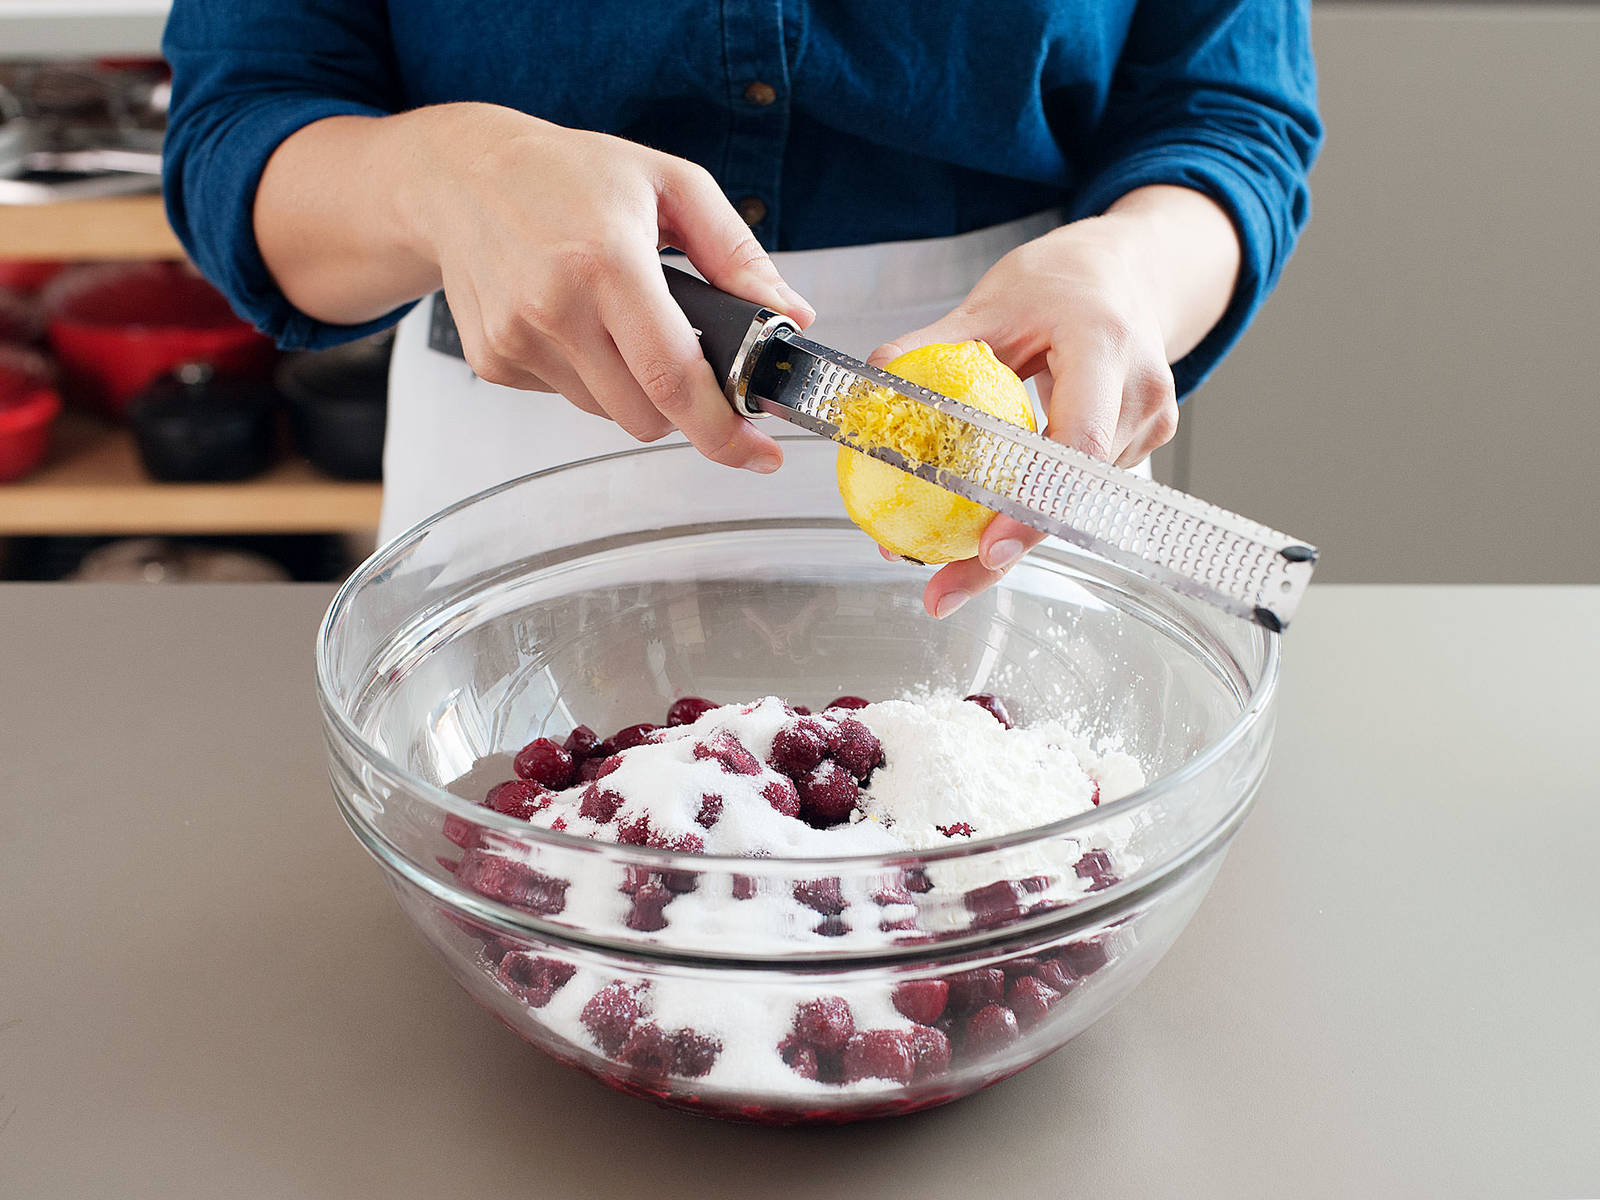 For the filling, combine remaining sugar with lemon zest in a large bowl. Add cornstarch and salt and whisk until combined, then add cherries and toss to coat. If using frozen cherries, be sure to drain off any excess juice after thawing and before combining with other ingredients for filling.